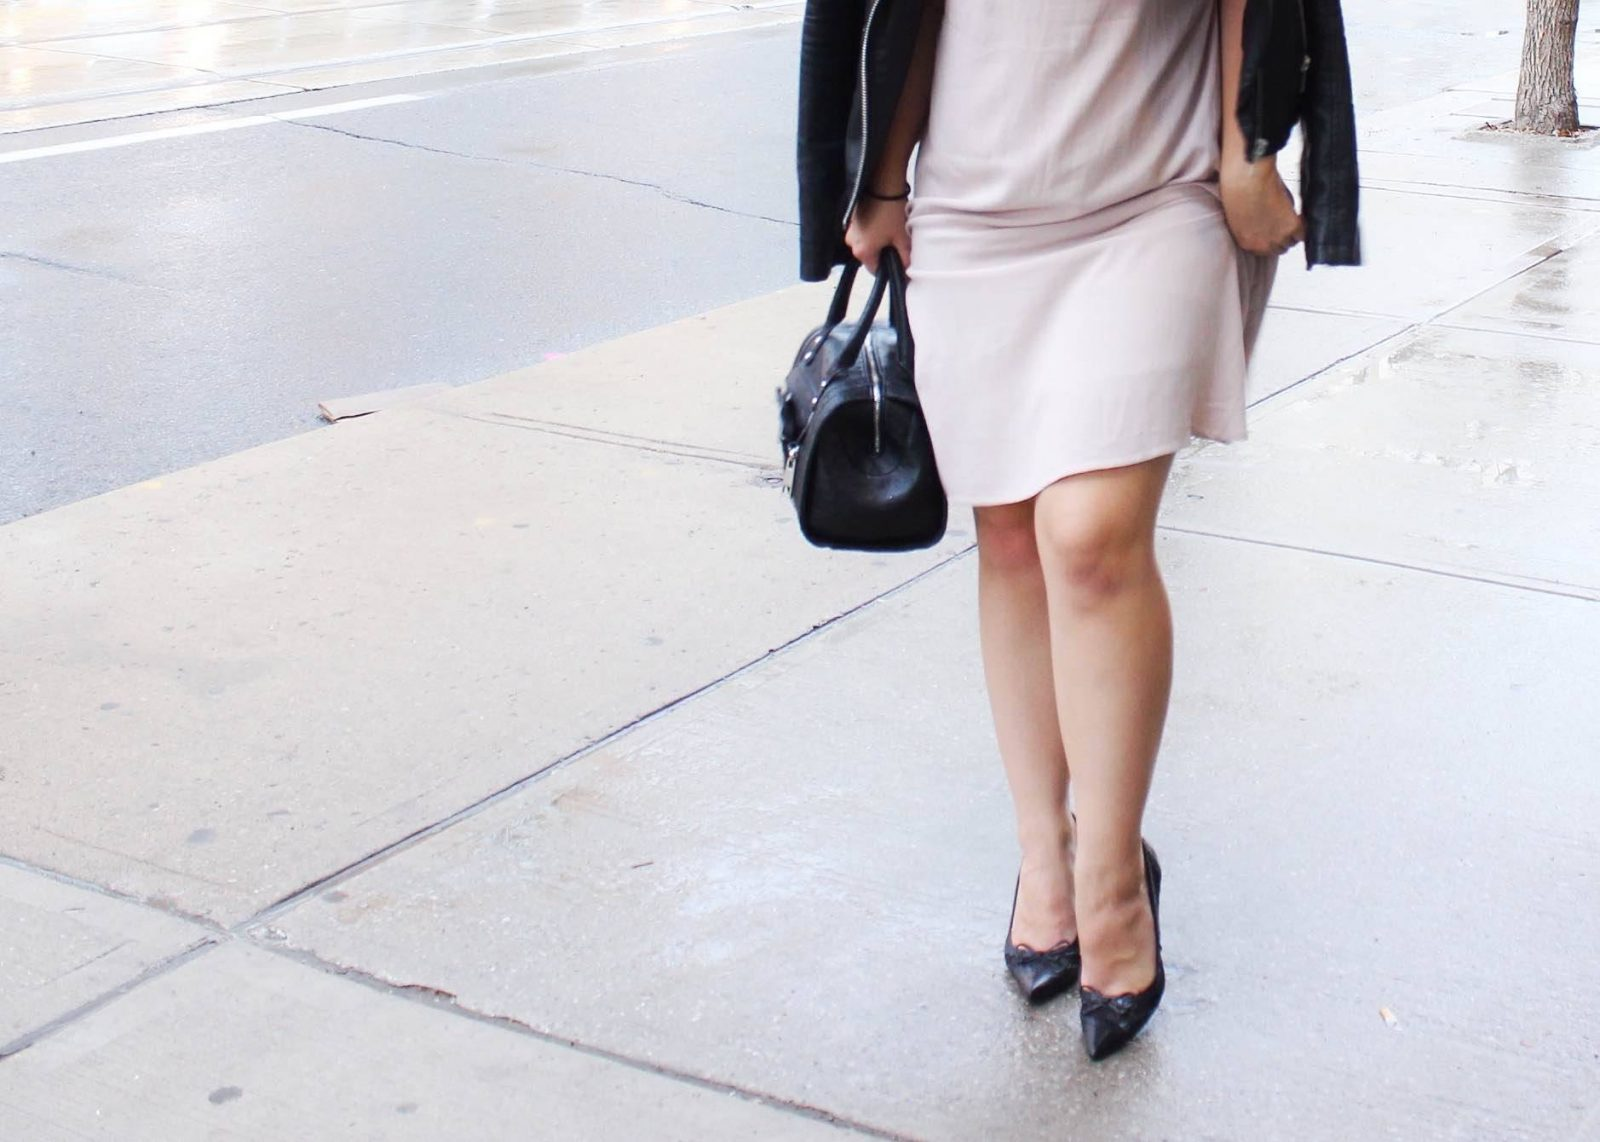 Nudes in the City - Pearls and Polkadots